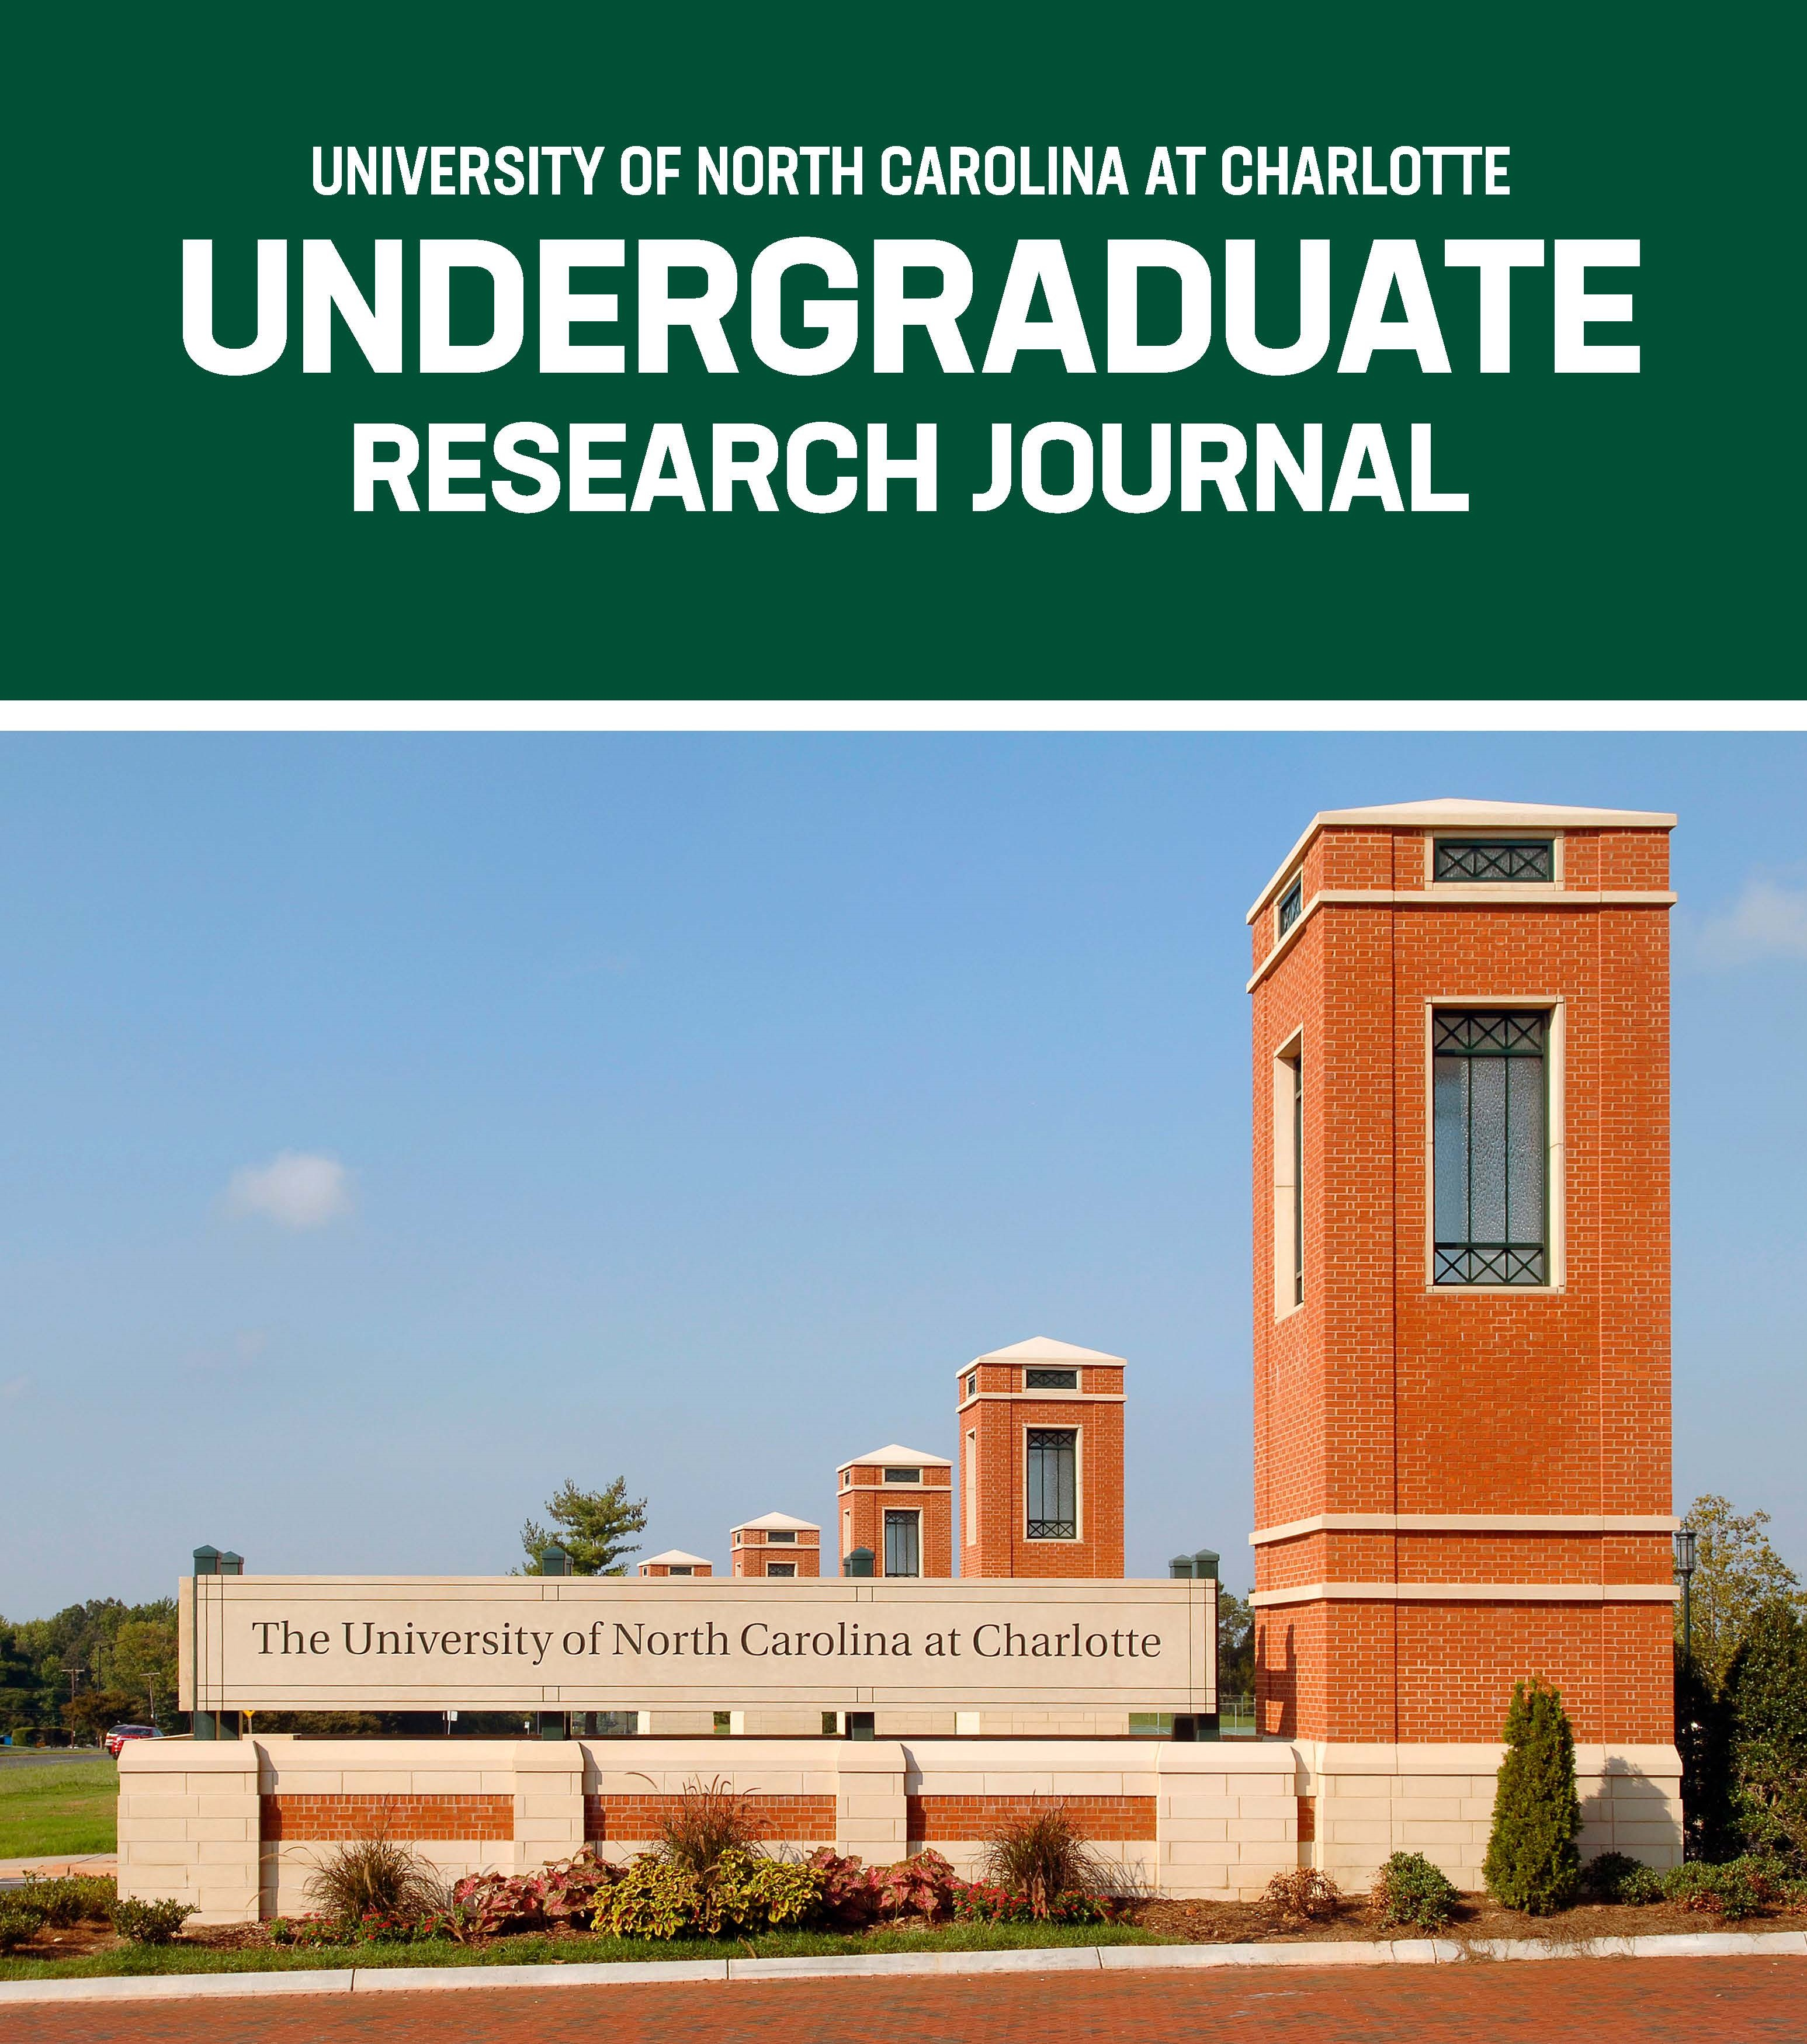 Journal title University of North Carolina at Charlotte Undergraduate Research Journal on dark green background above photo of the main entrance sign of UNC Charlotte campus.